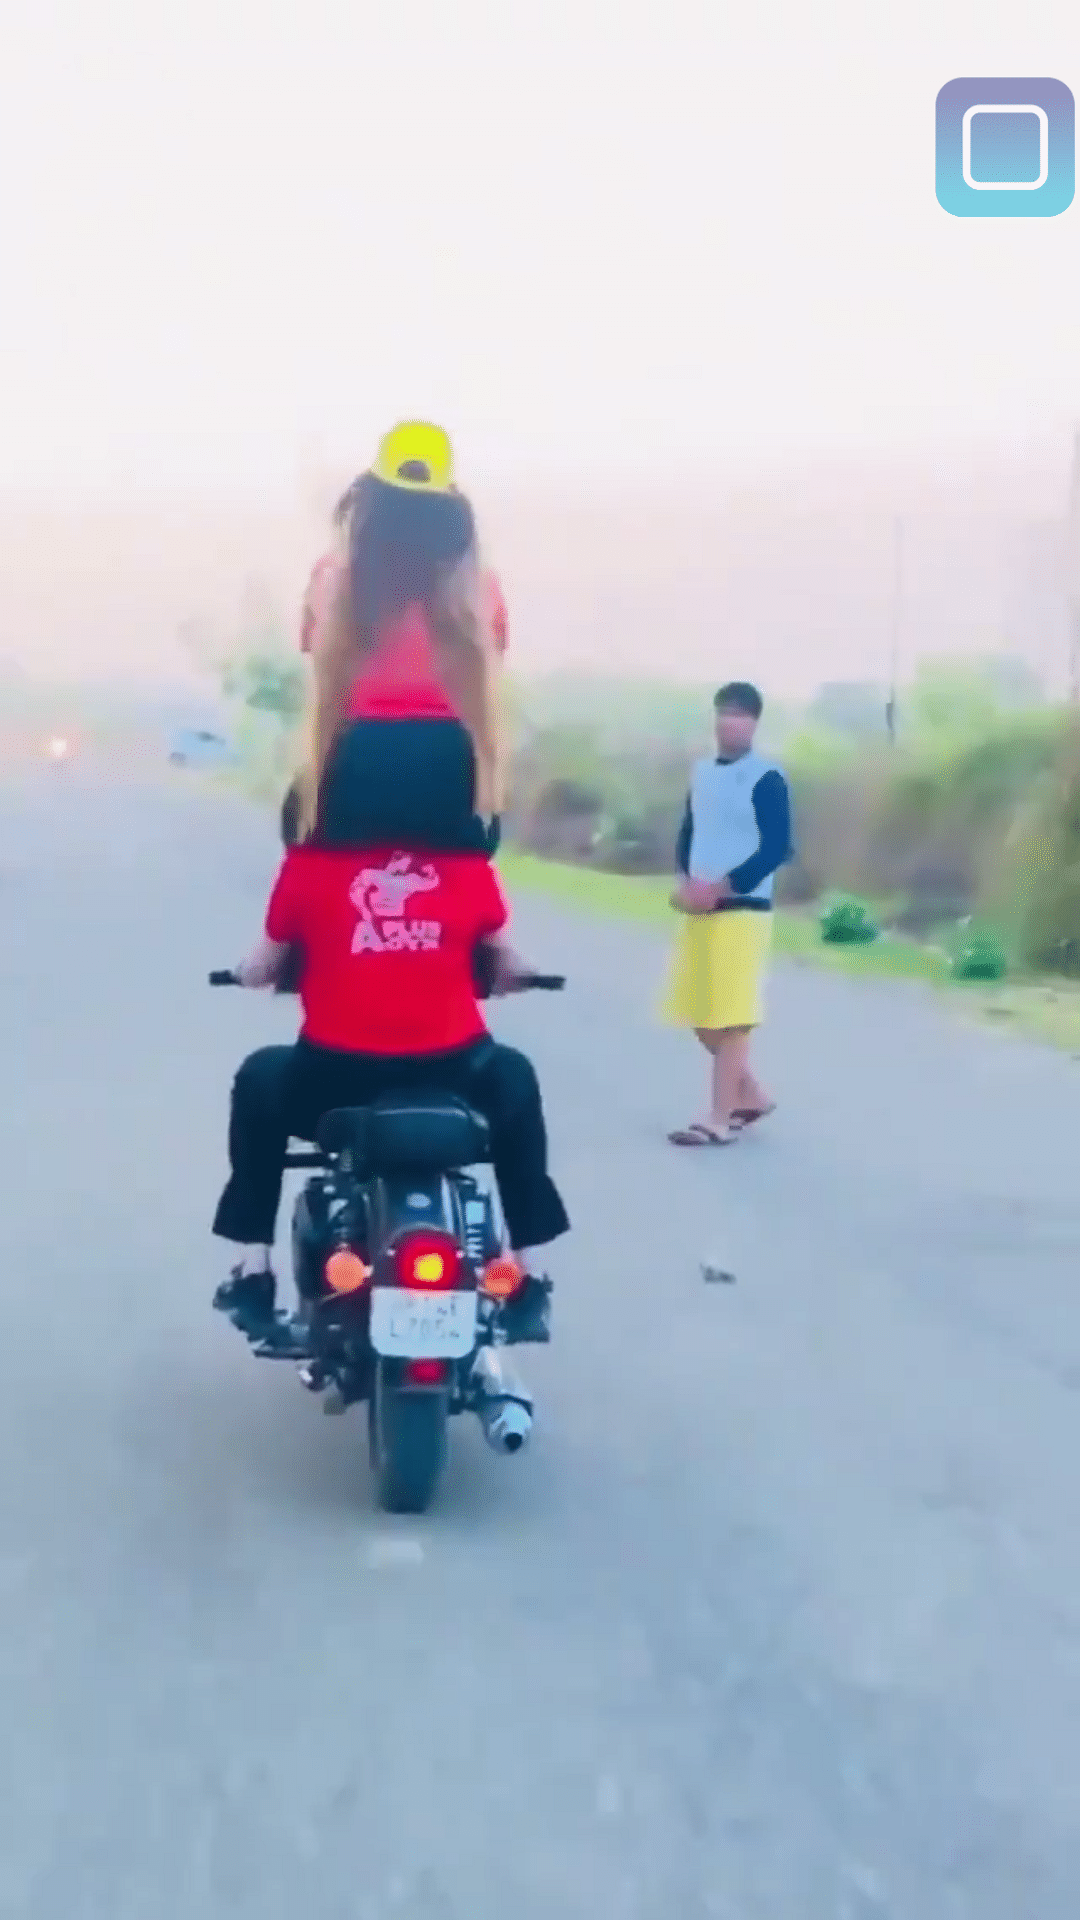 ghaziabad-two-girls-get-expensive-doing-stunts-on-motorcycle-e-challan-of-11-thousand-chopped